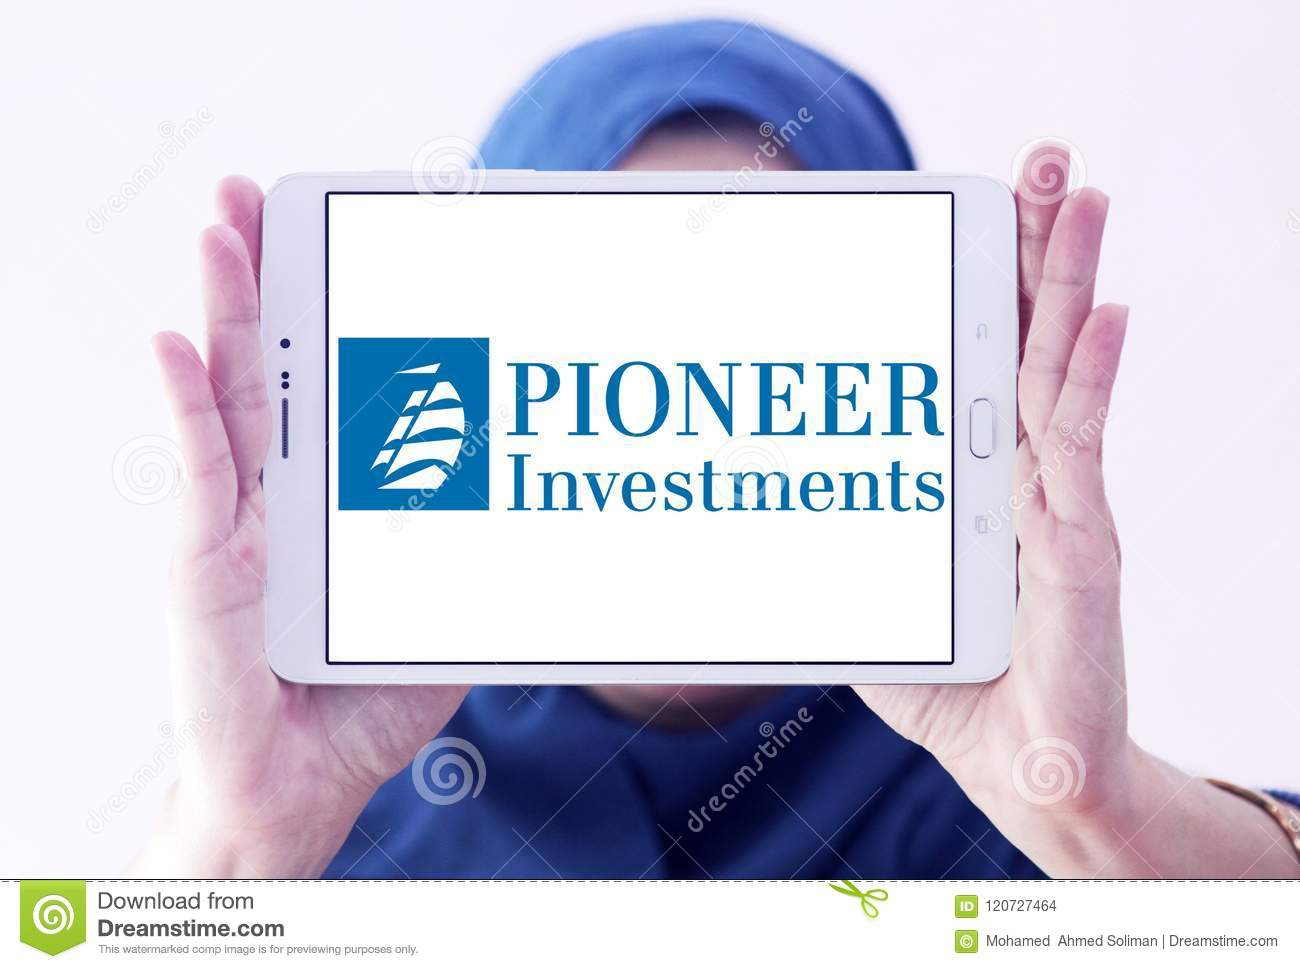 Pioneer global investments bitcoins trader online